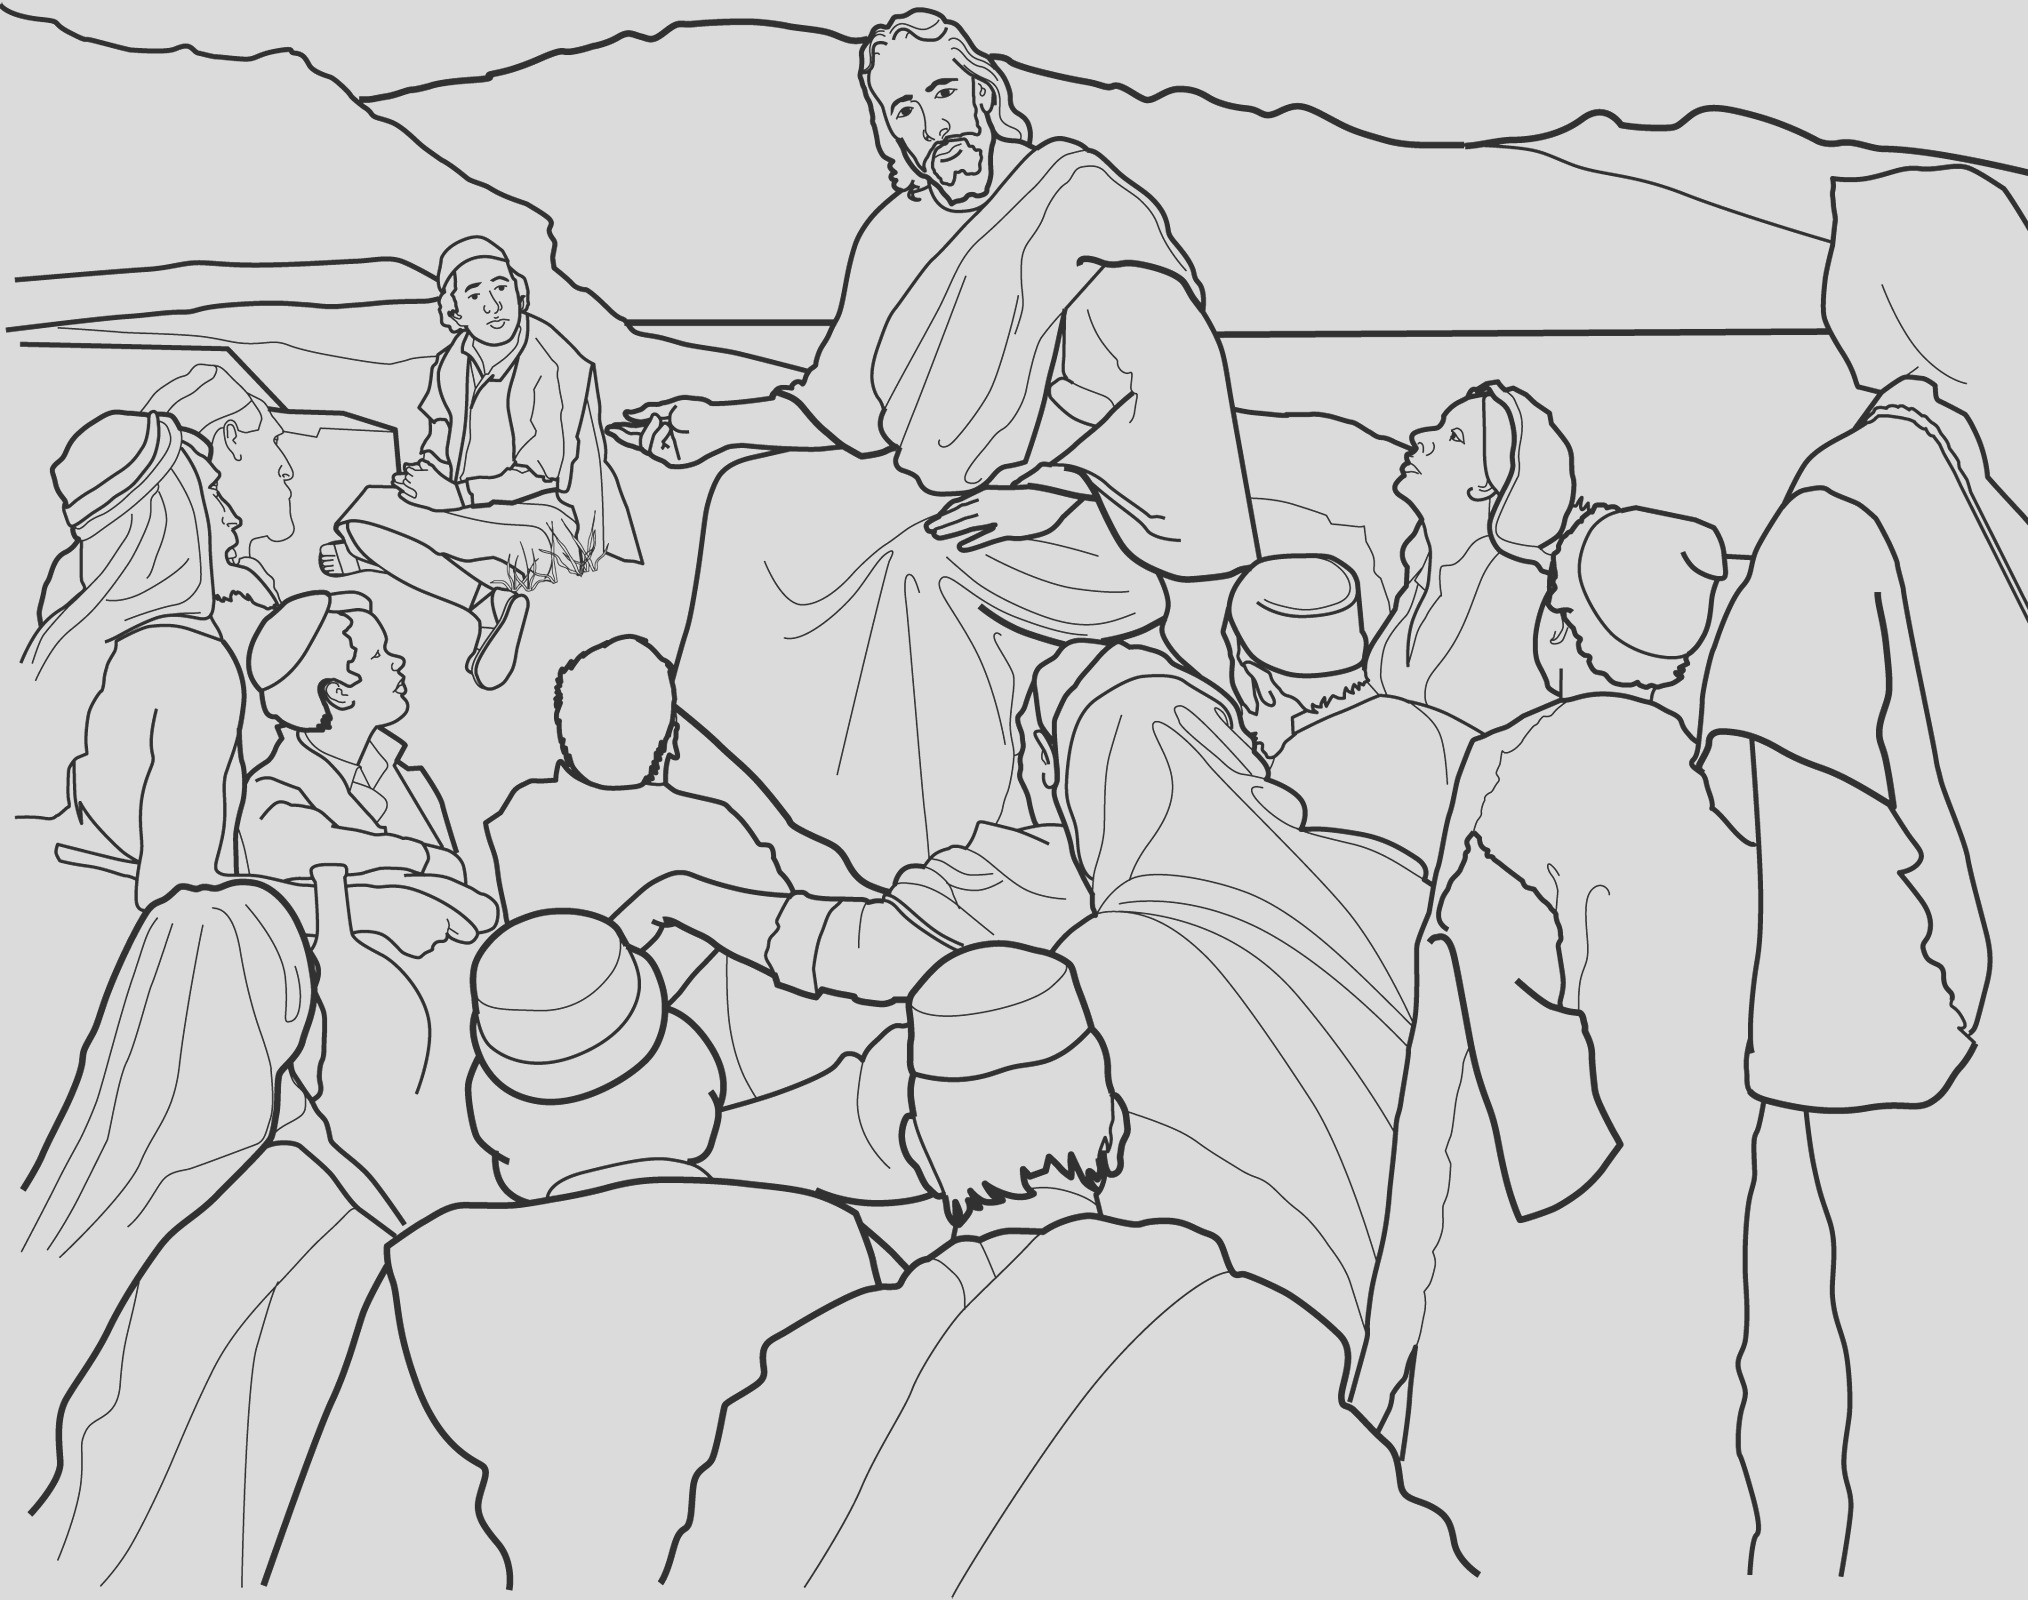 jesus christ sermon on mount lang=eng